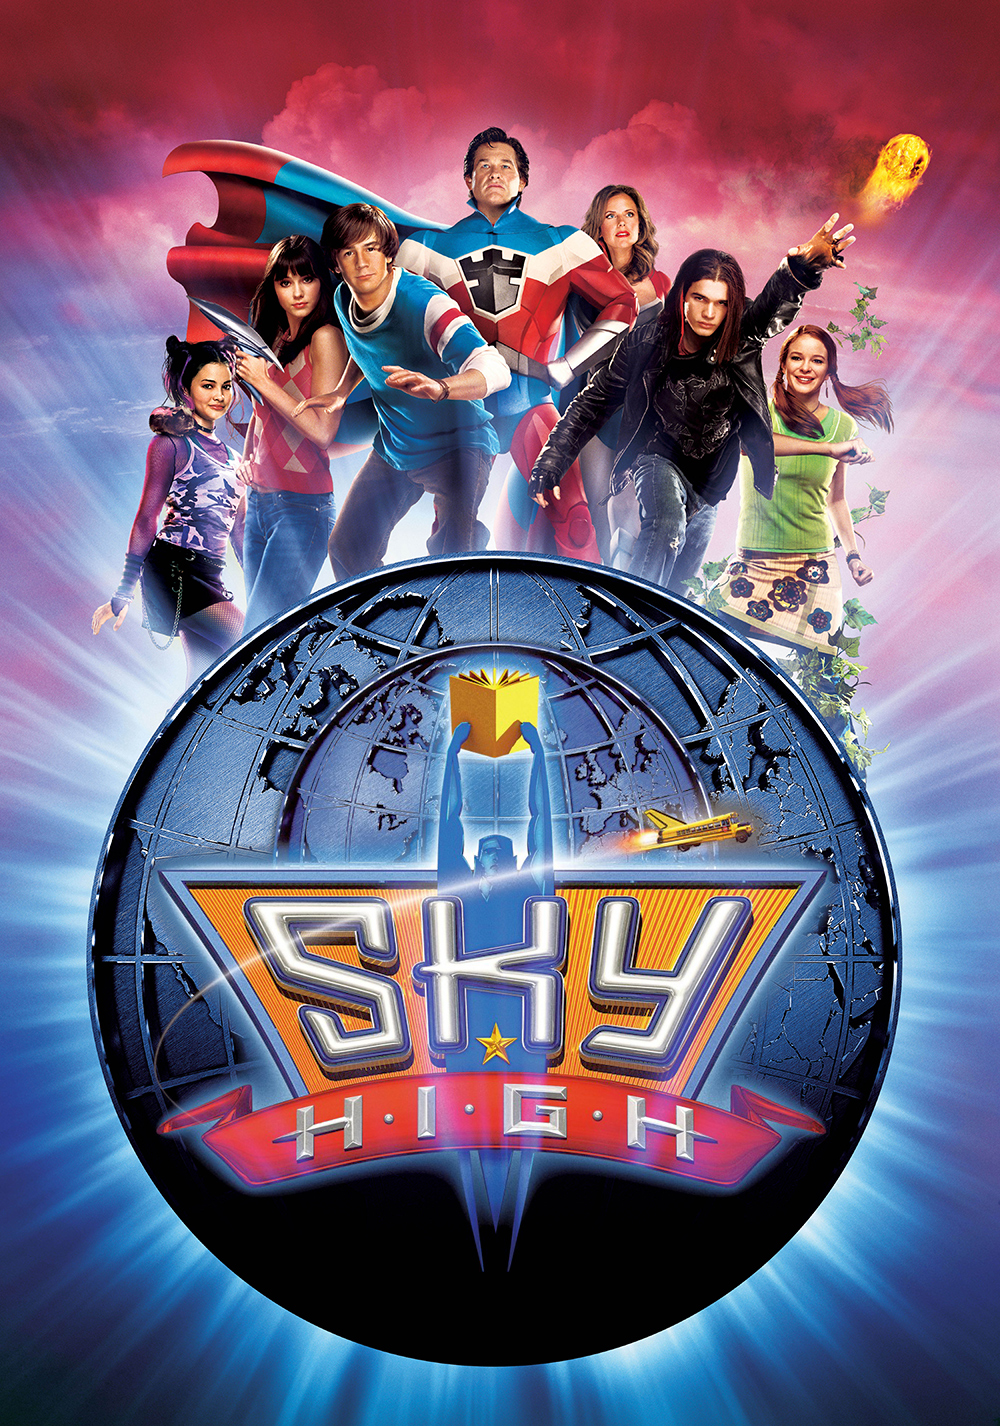 SKY HIGH (2005) MOVIE TAMIL DUBBED HD